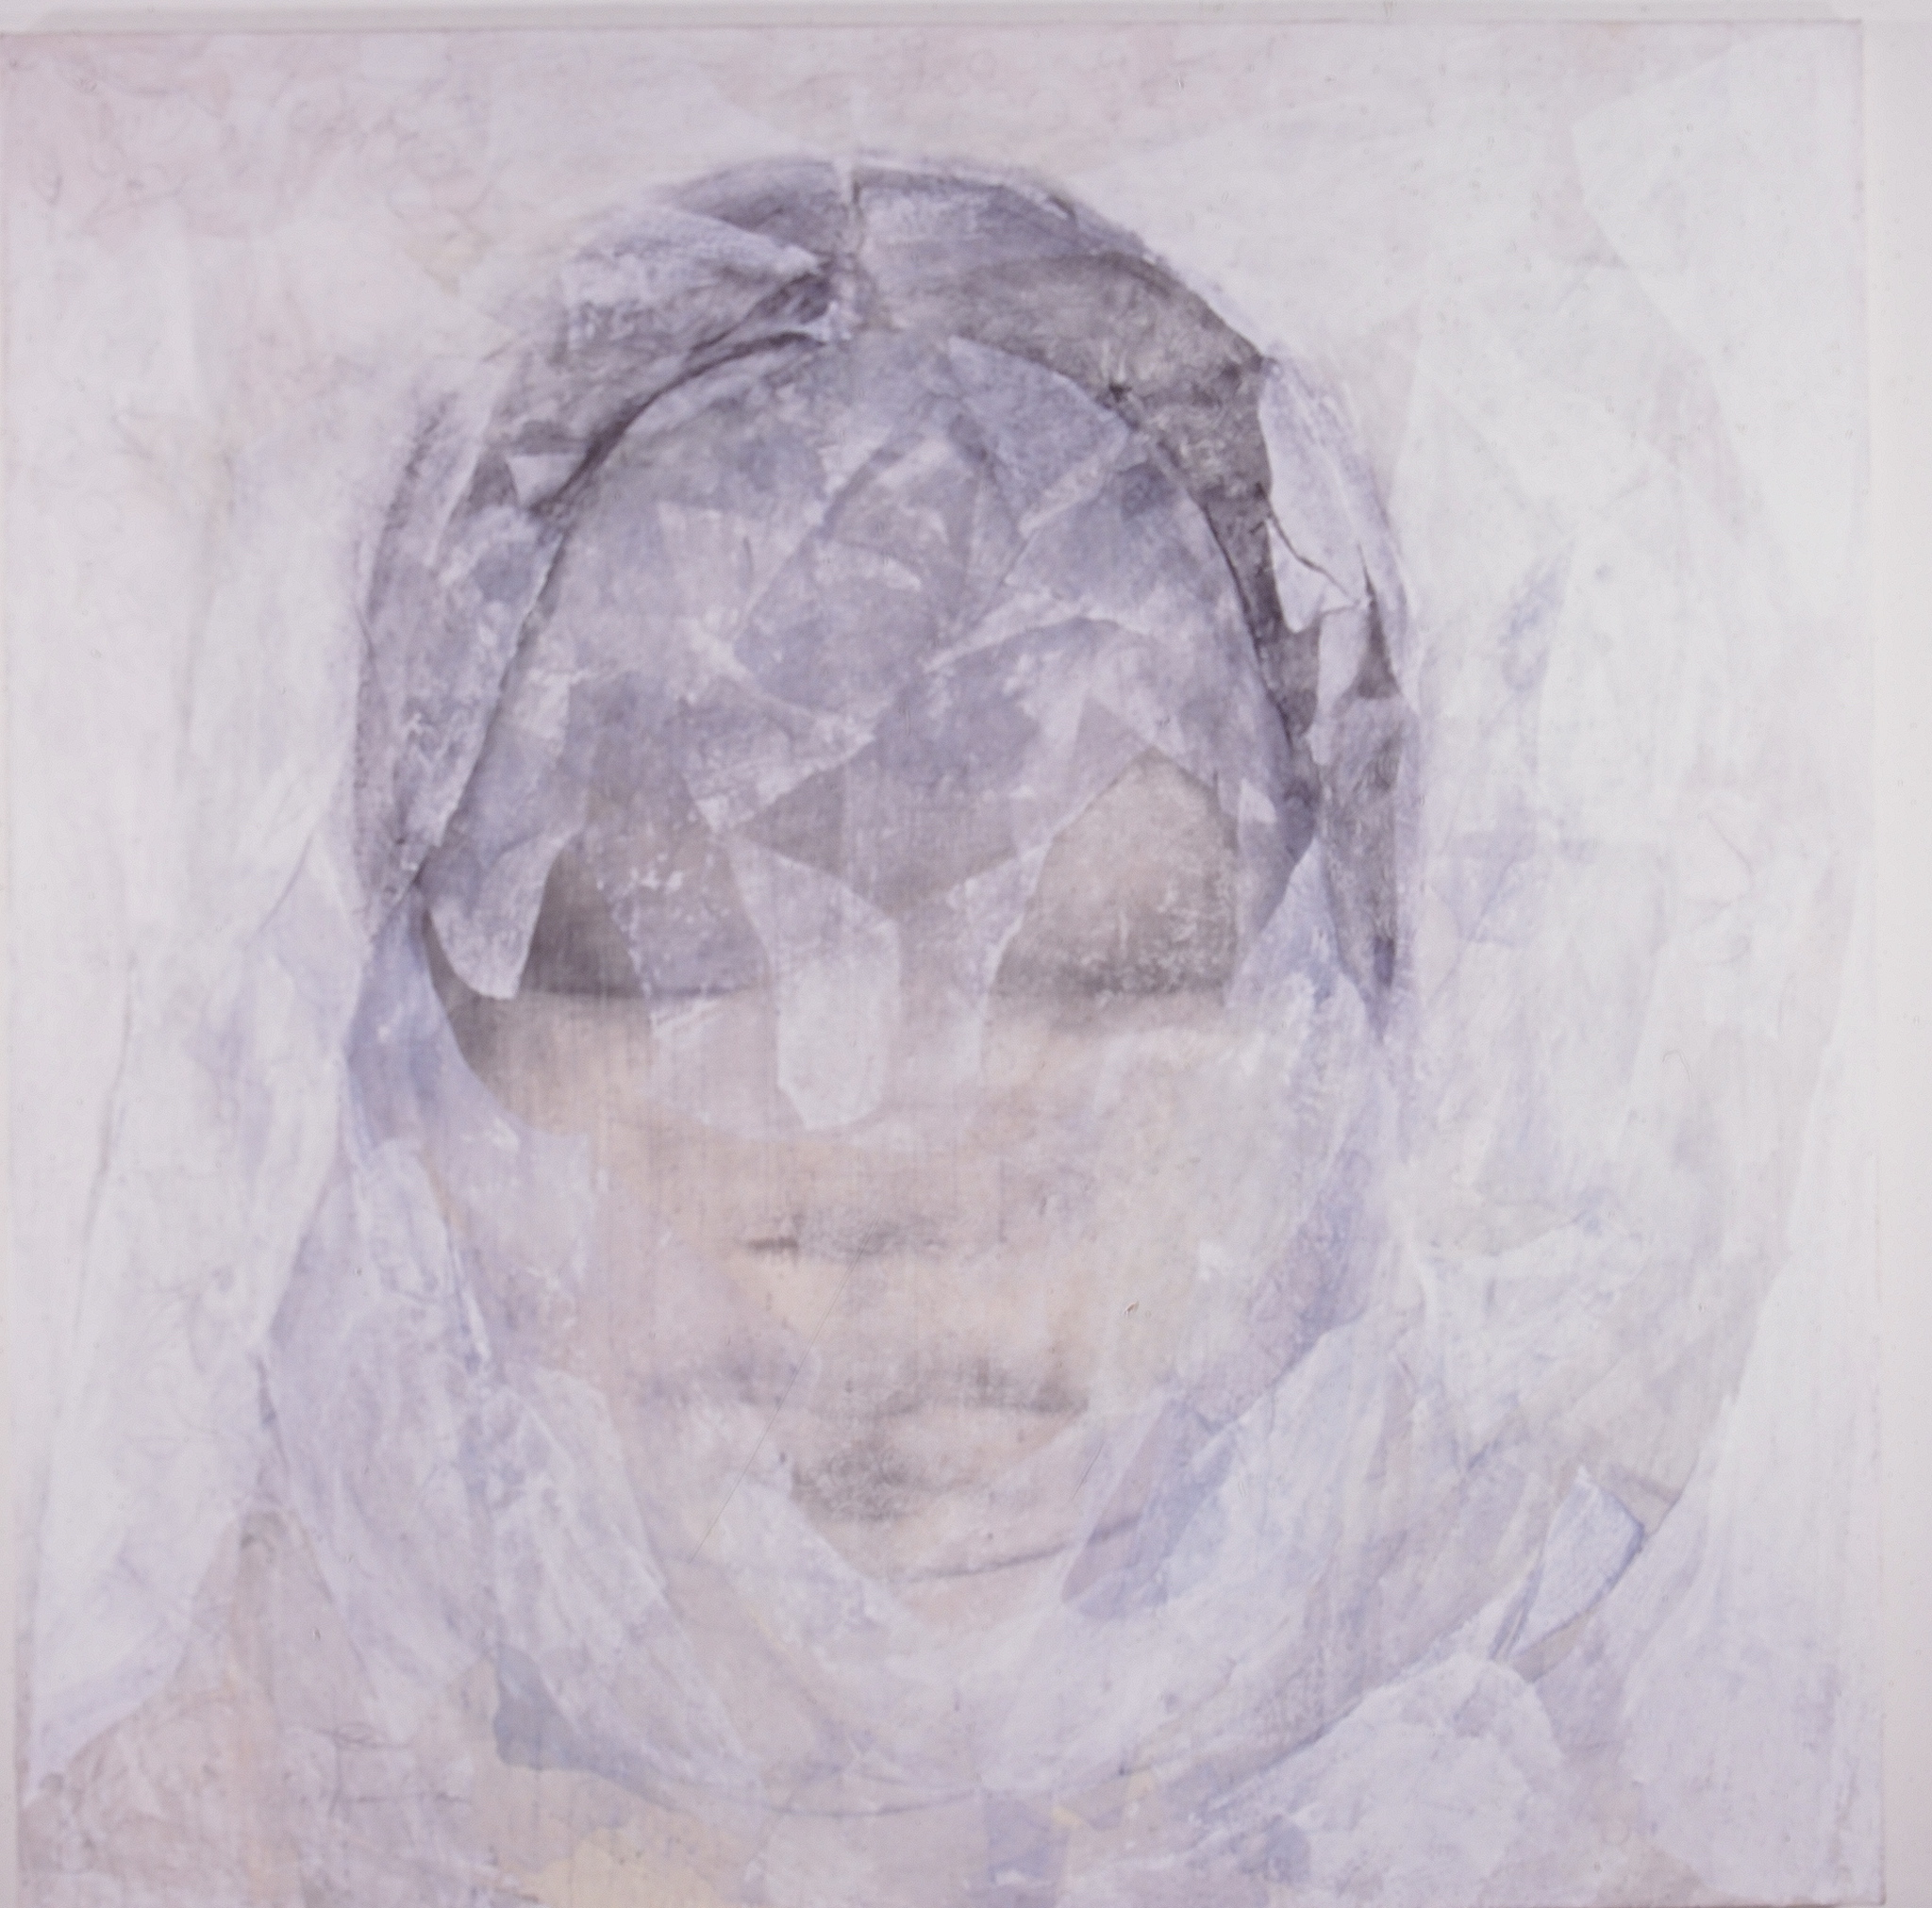 SoHyun Bae, A Woman of Josun Dynasty: Colossal Head IV, 1998, charcoal, rice-paper and pure pigment on canvas, 81 x 81 inches